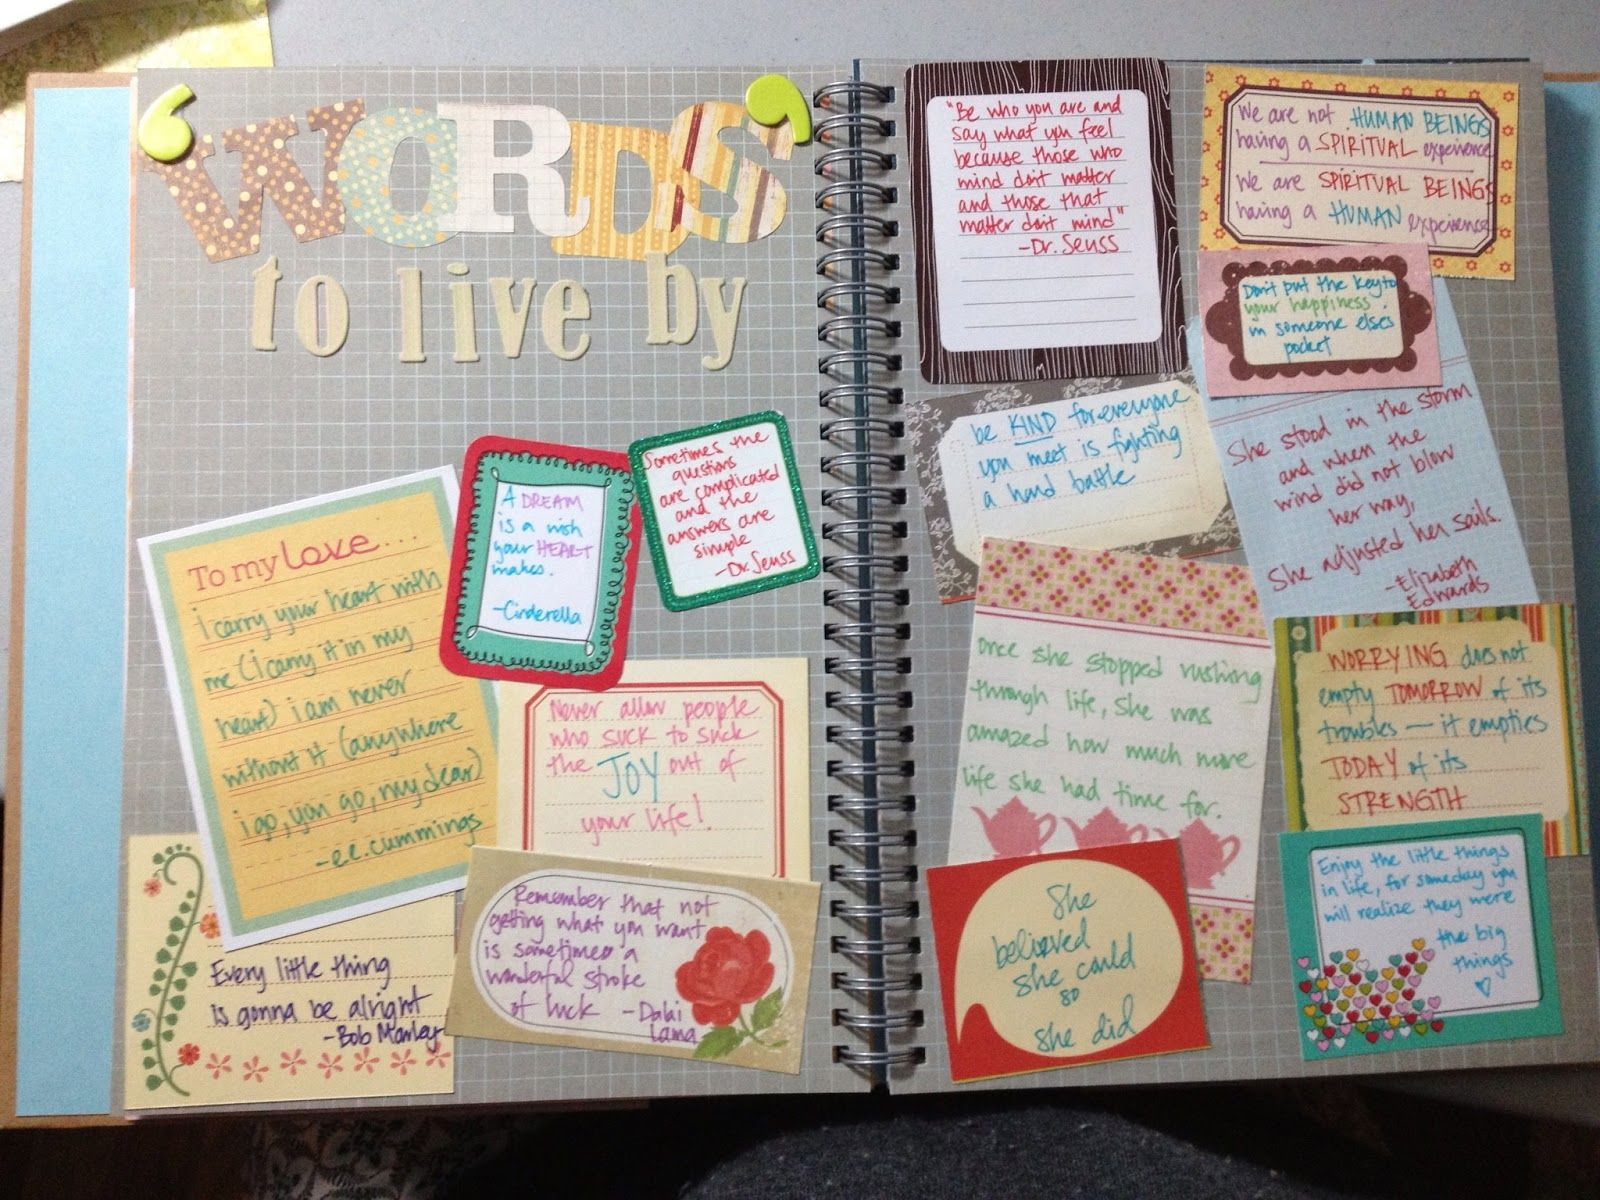 How to scrapbook journal - This Is A Smash Book Page But I Really Want To Do Something Like This To Cover My Binders In The Fall